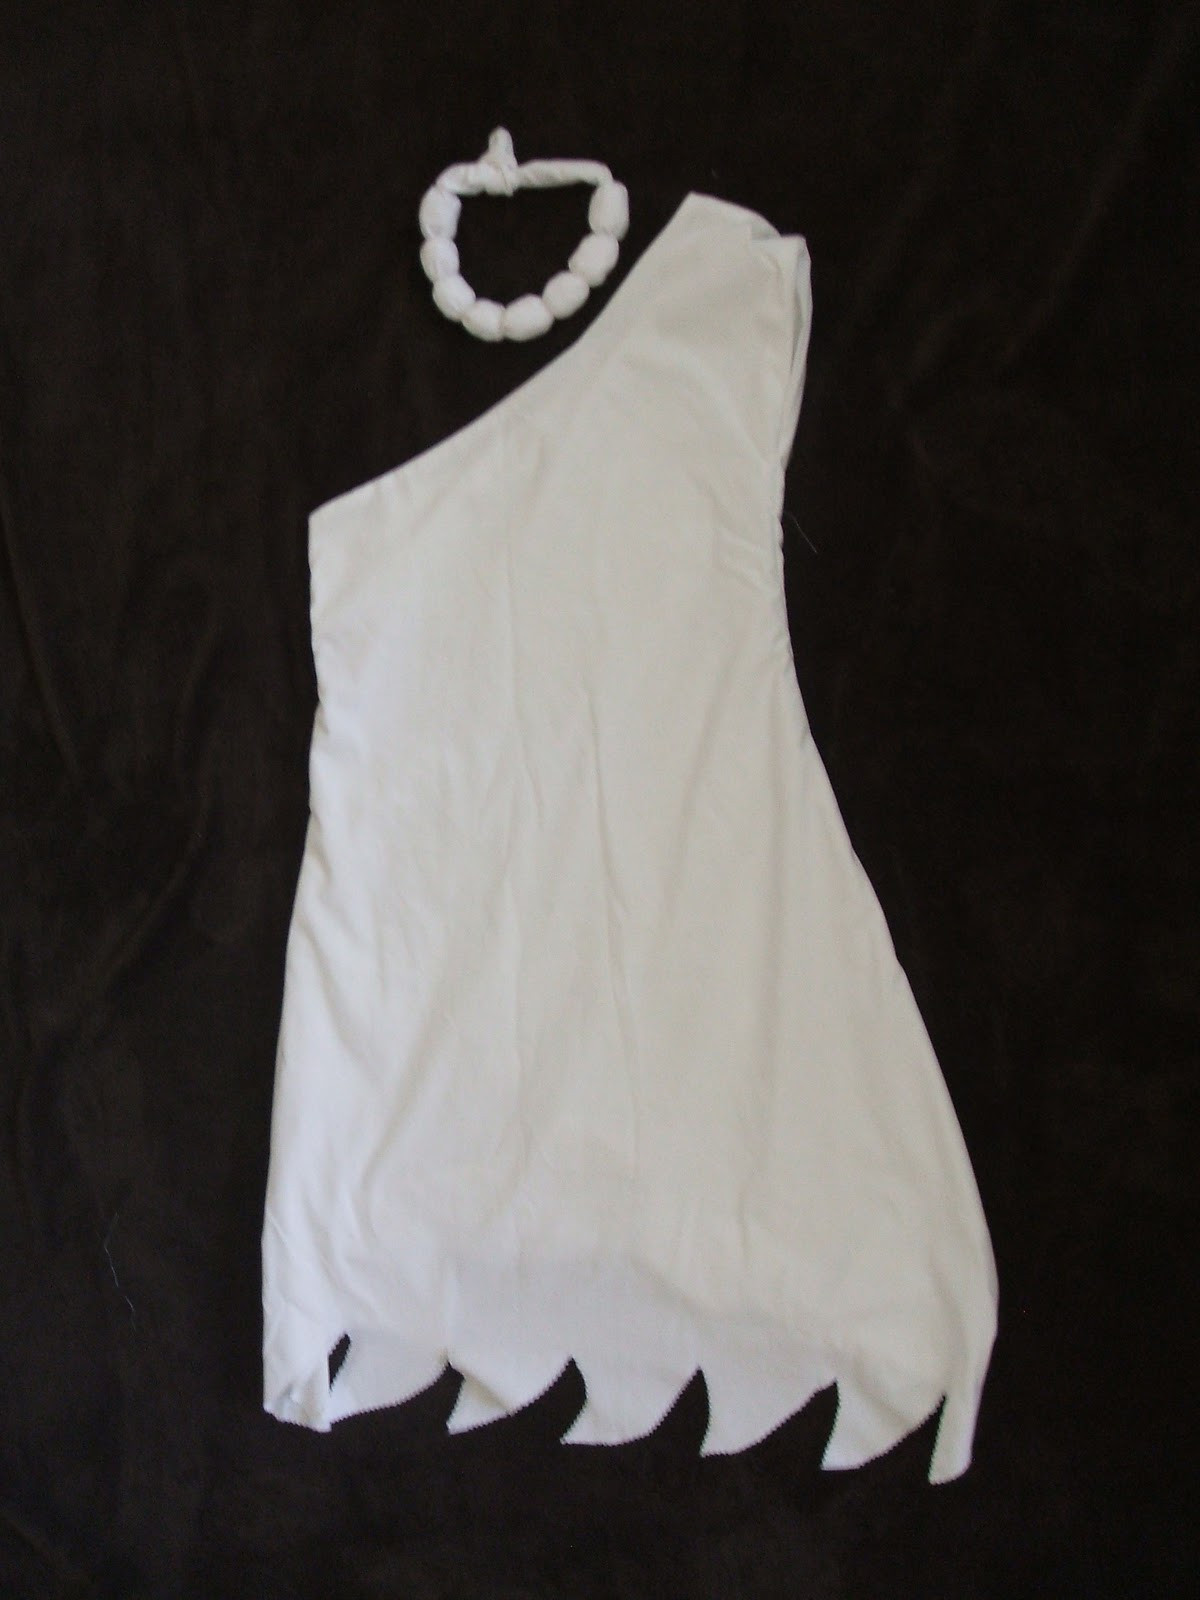 Best ideas about Wilma Flintstone Costume DIY . Save or Pin Wilma Flintstone Costume Tutorial Peek a Boo Pages Now.